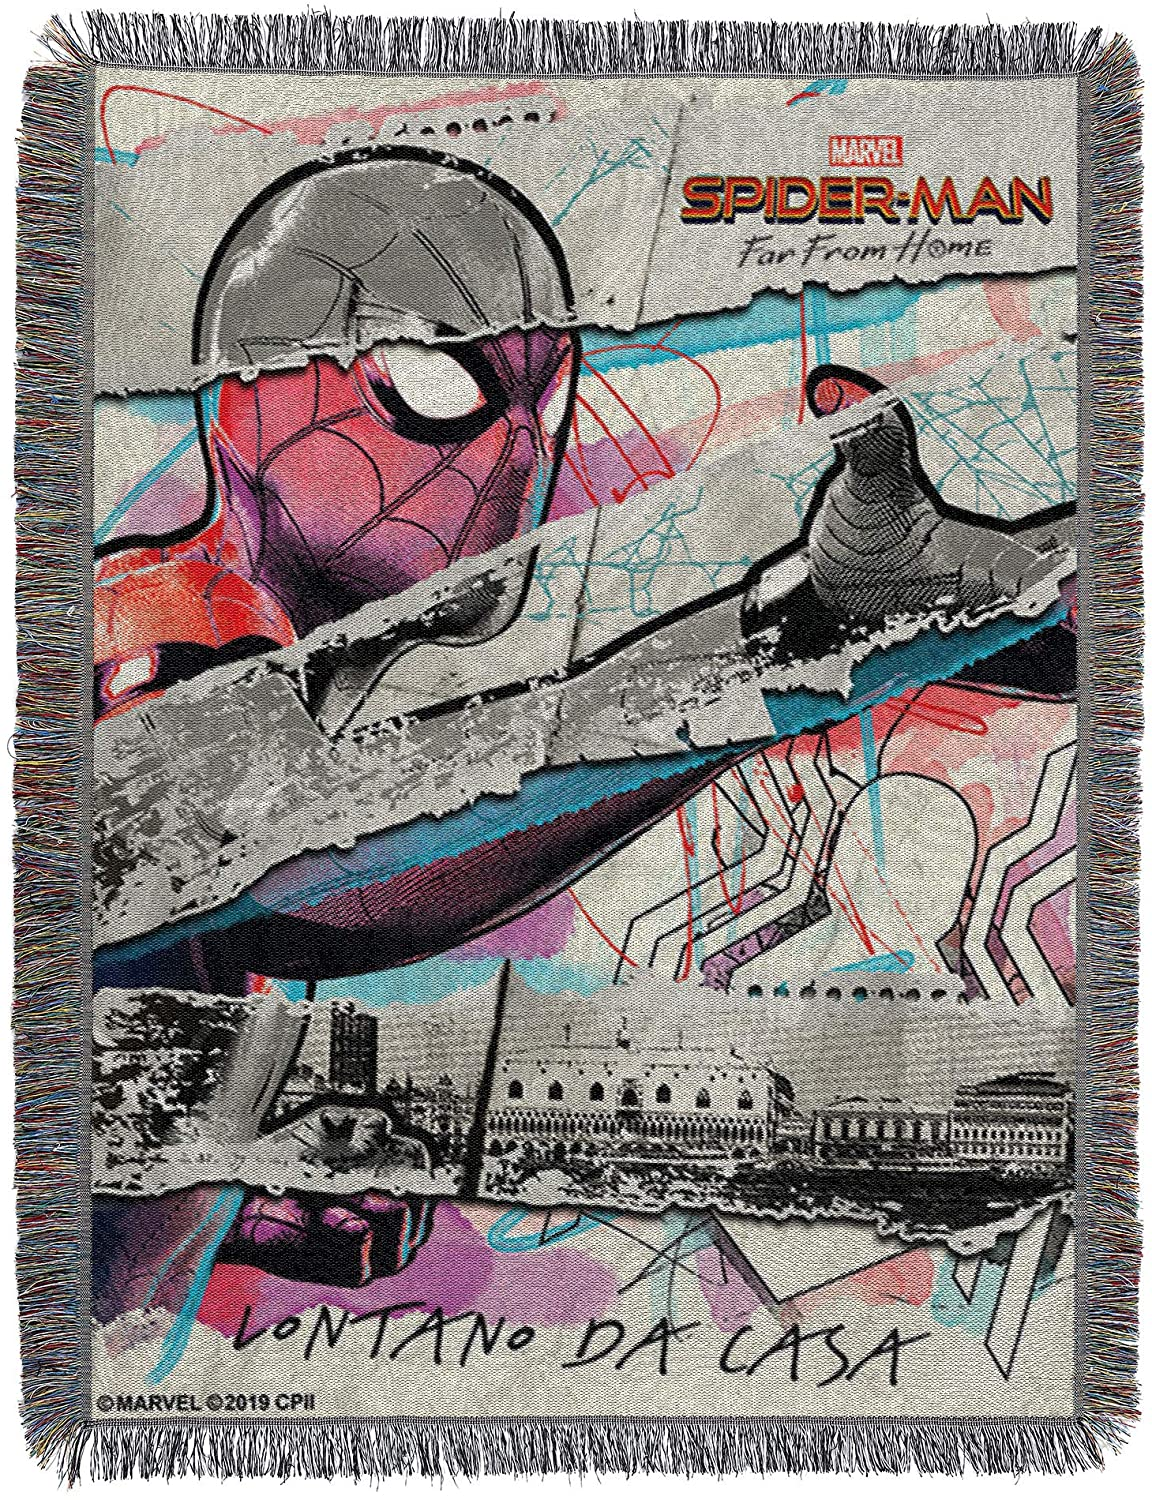 Marvel Spider-Man Far from Home, Da Casa Woven Tapestry Throw Blanket, One Size, Multi Color